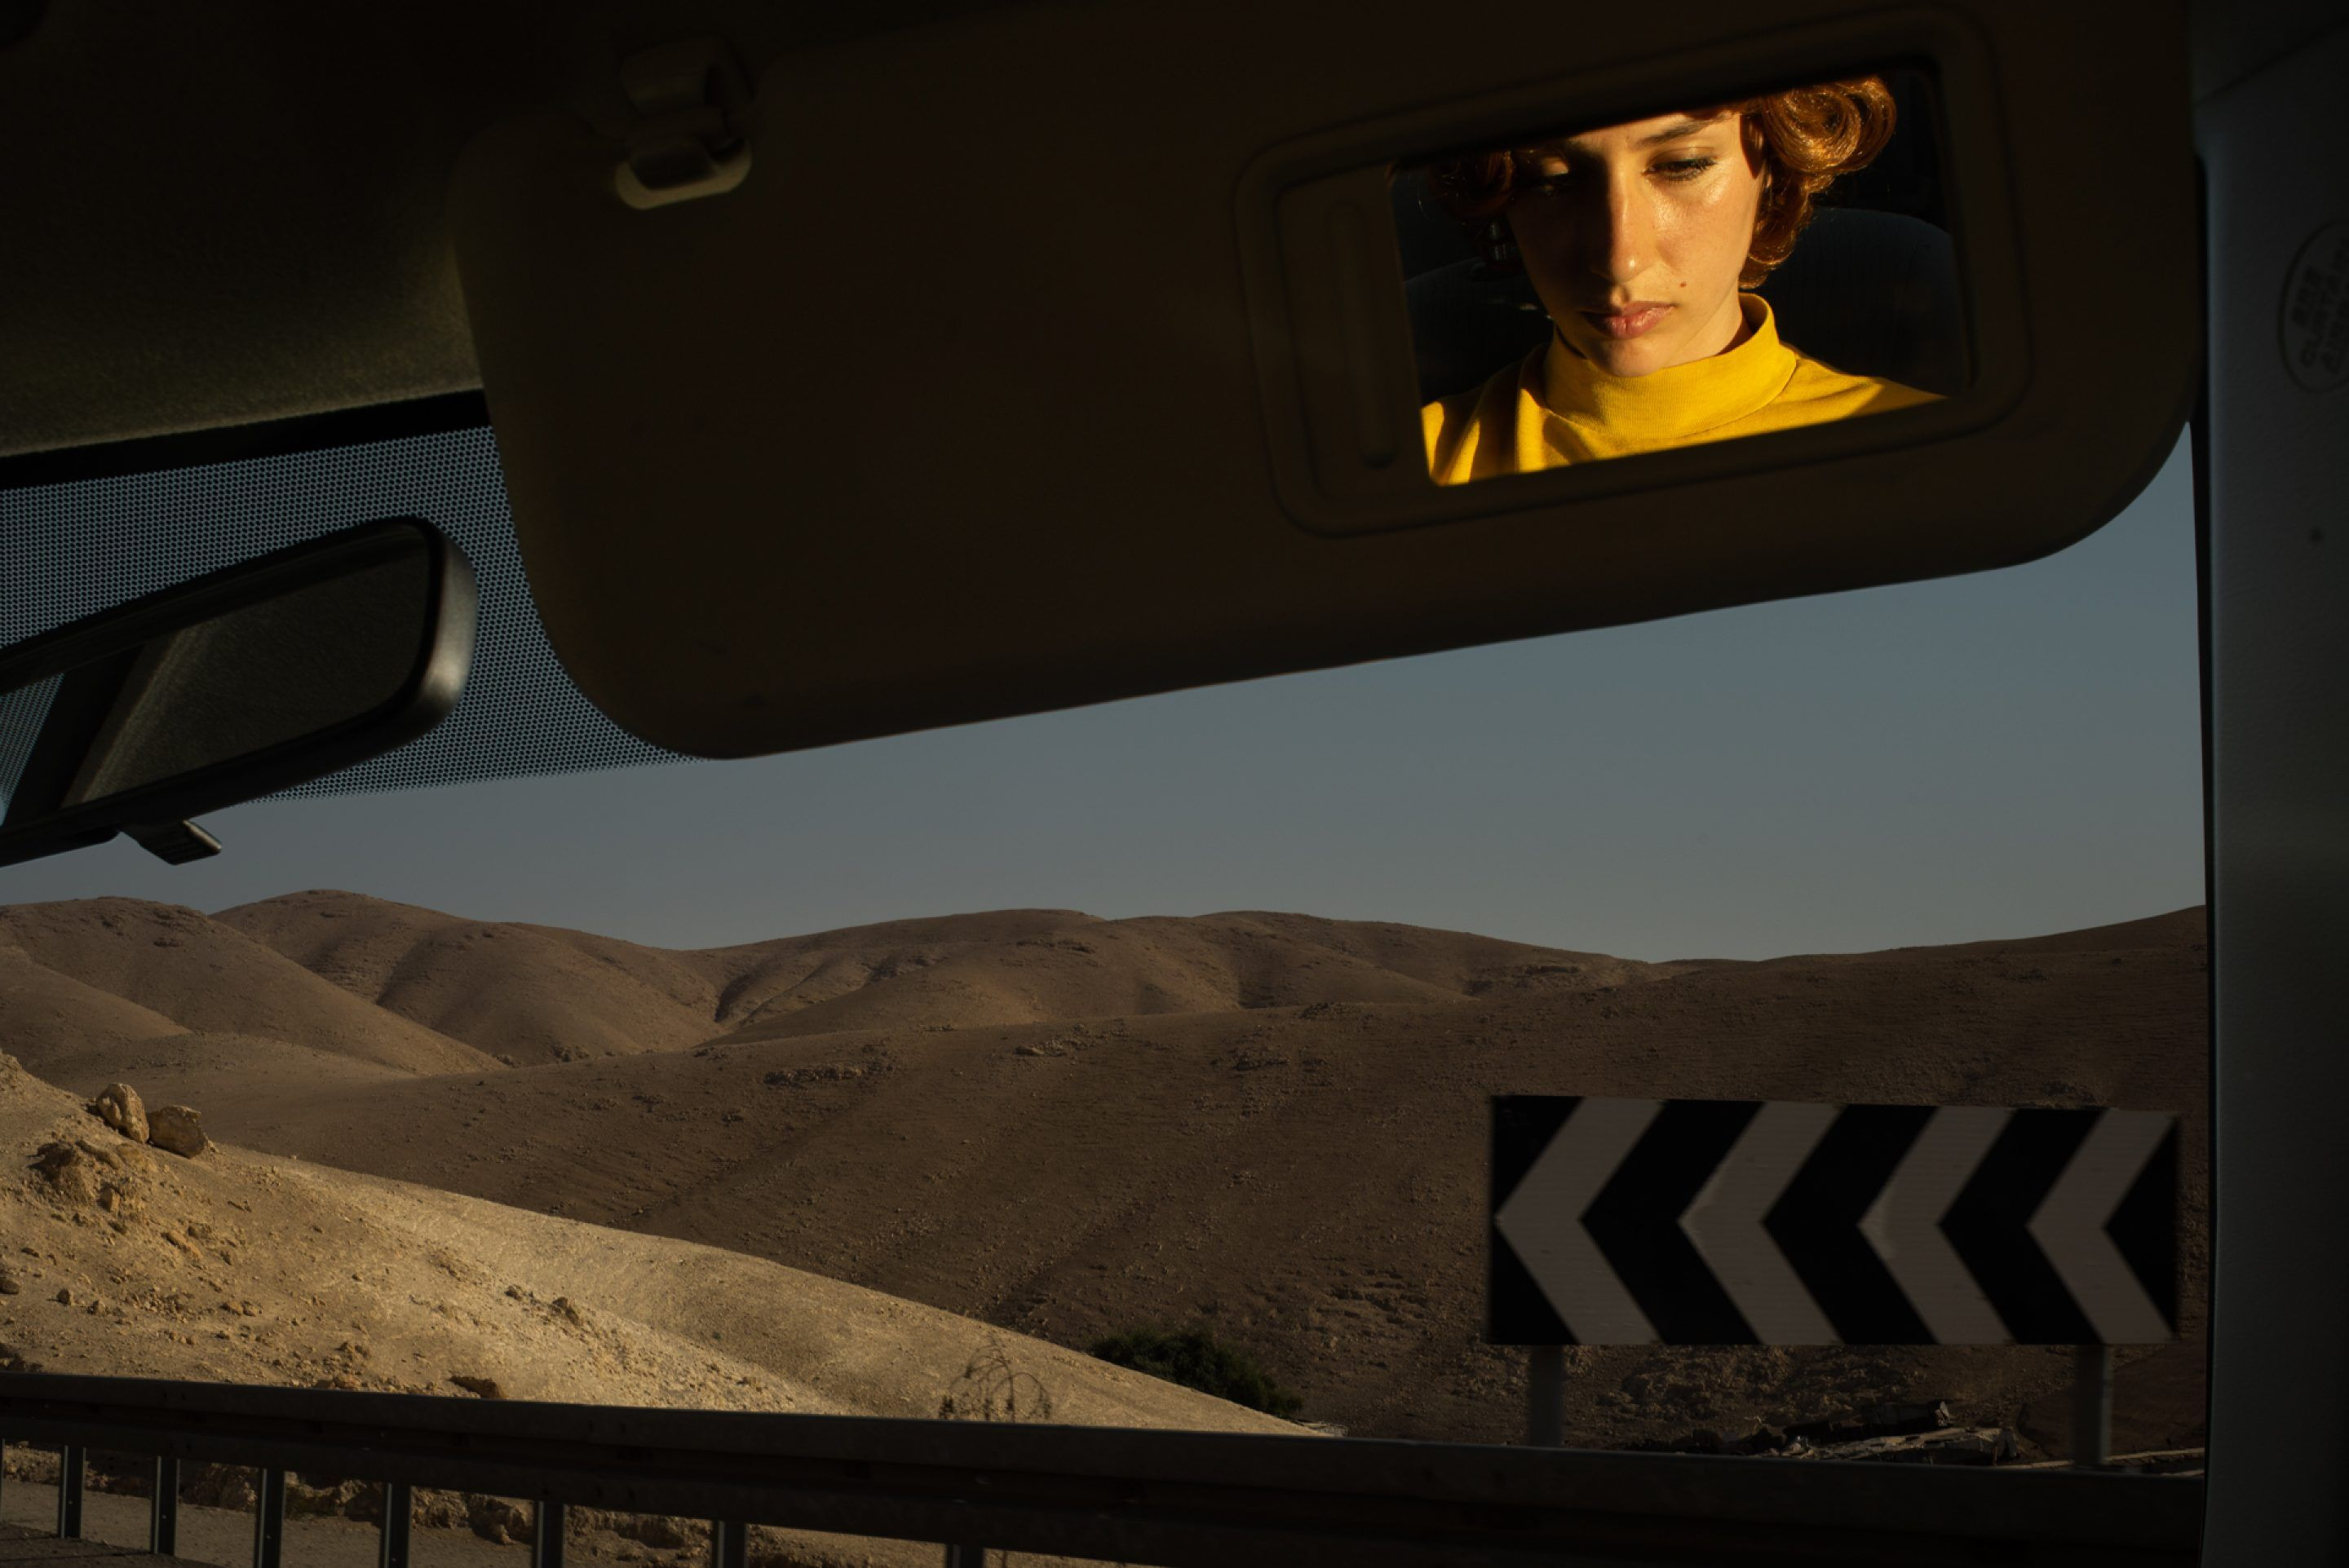 IGNANT-Photography-Tania-Franco-Klein-Proceed-To-The-Route-010